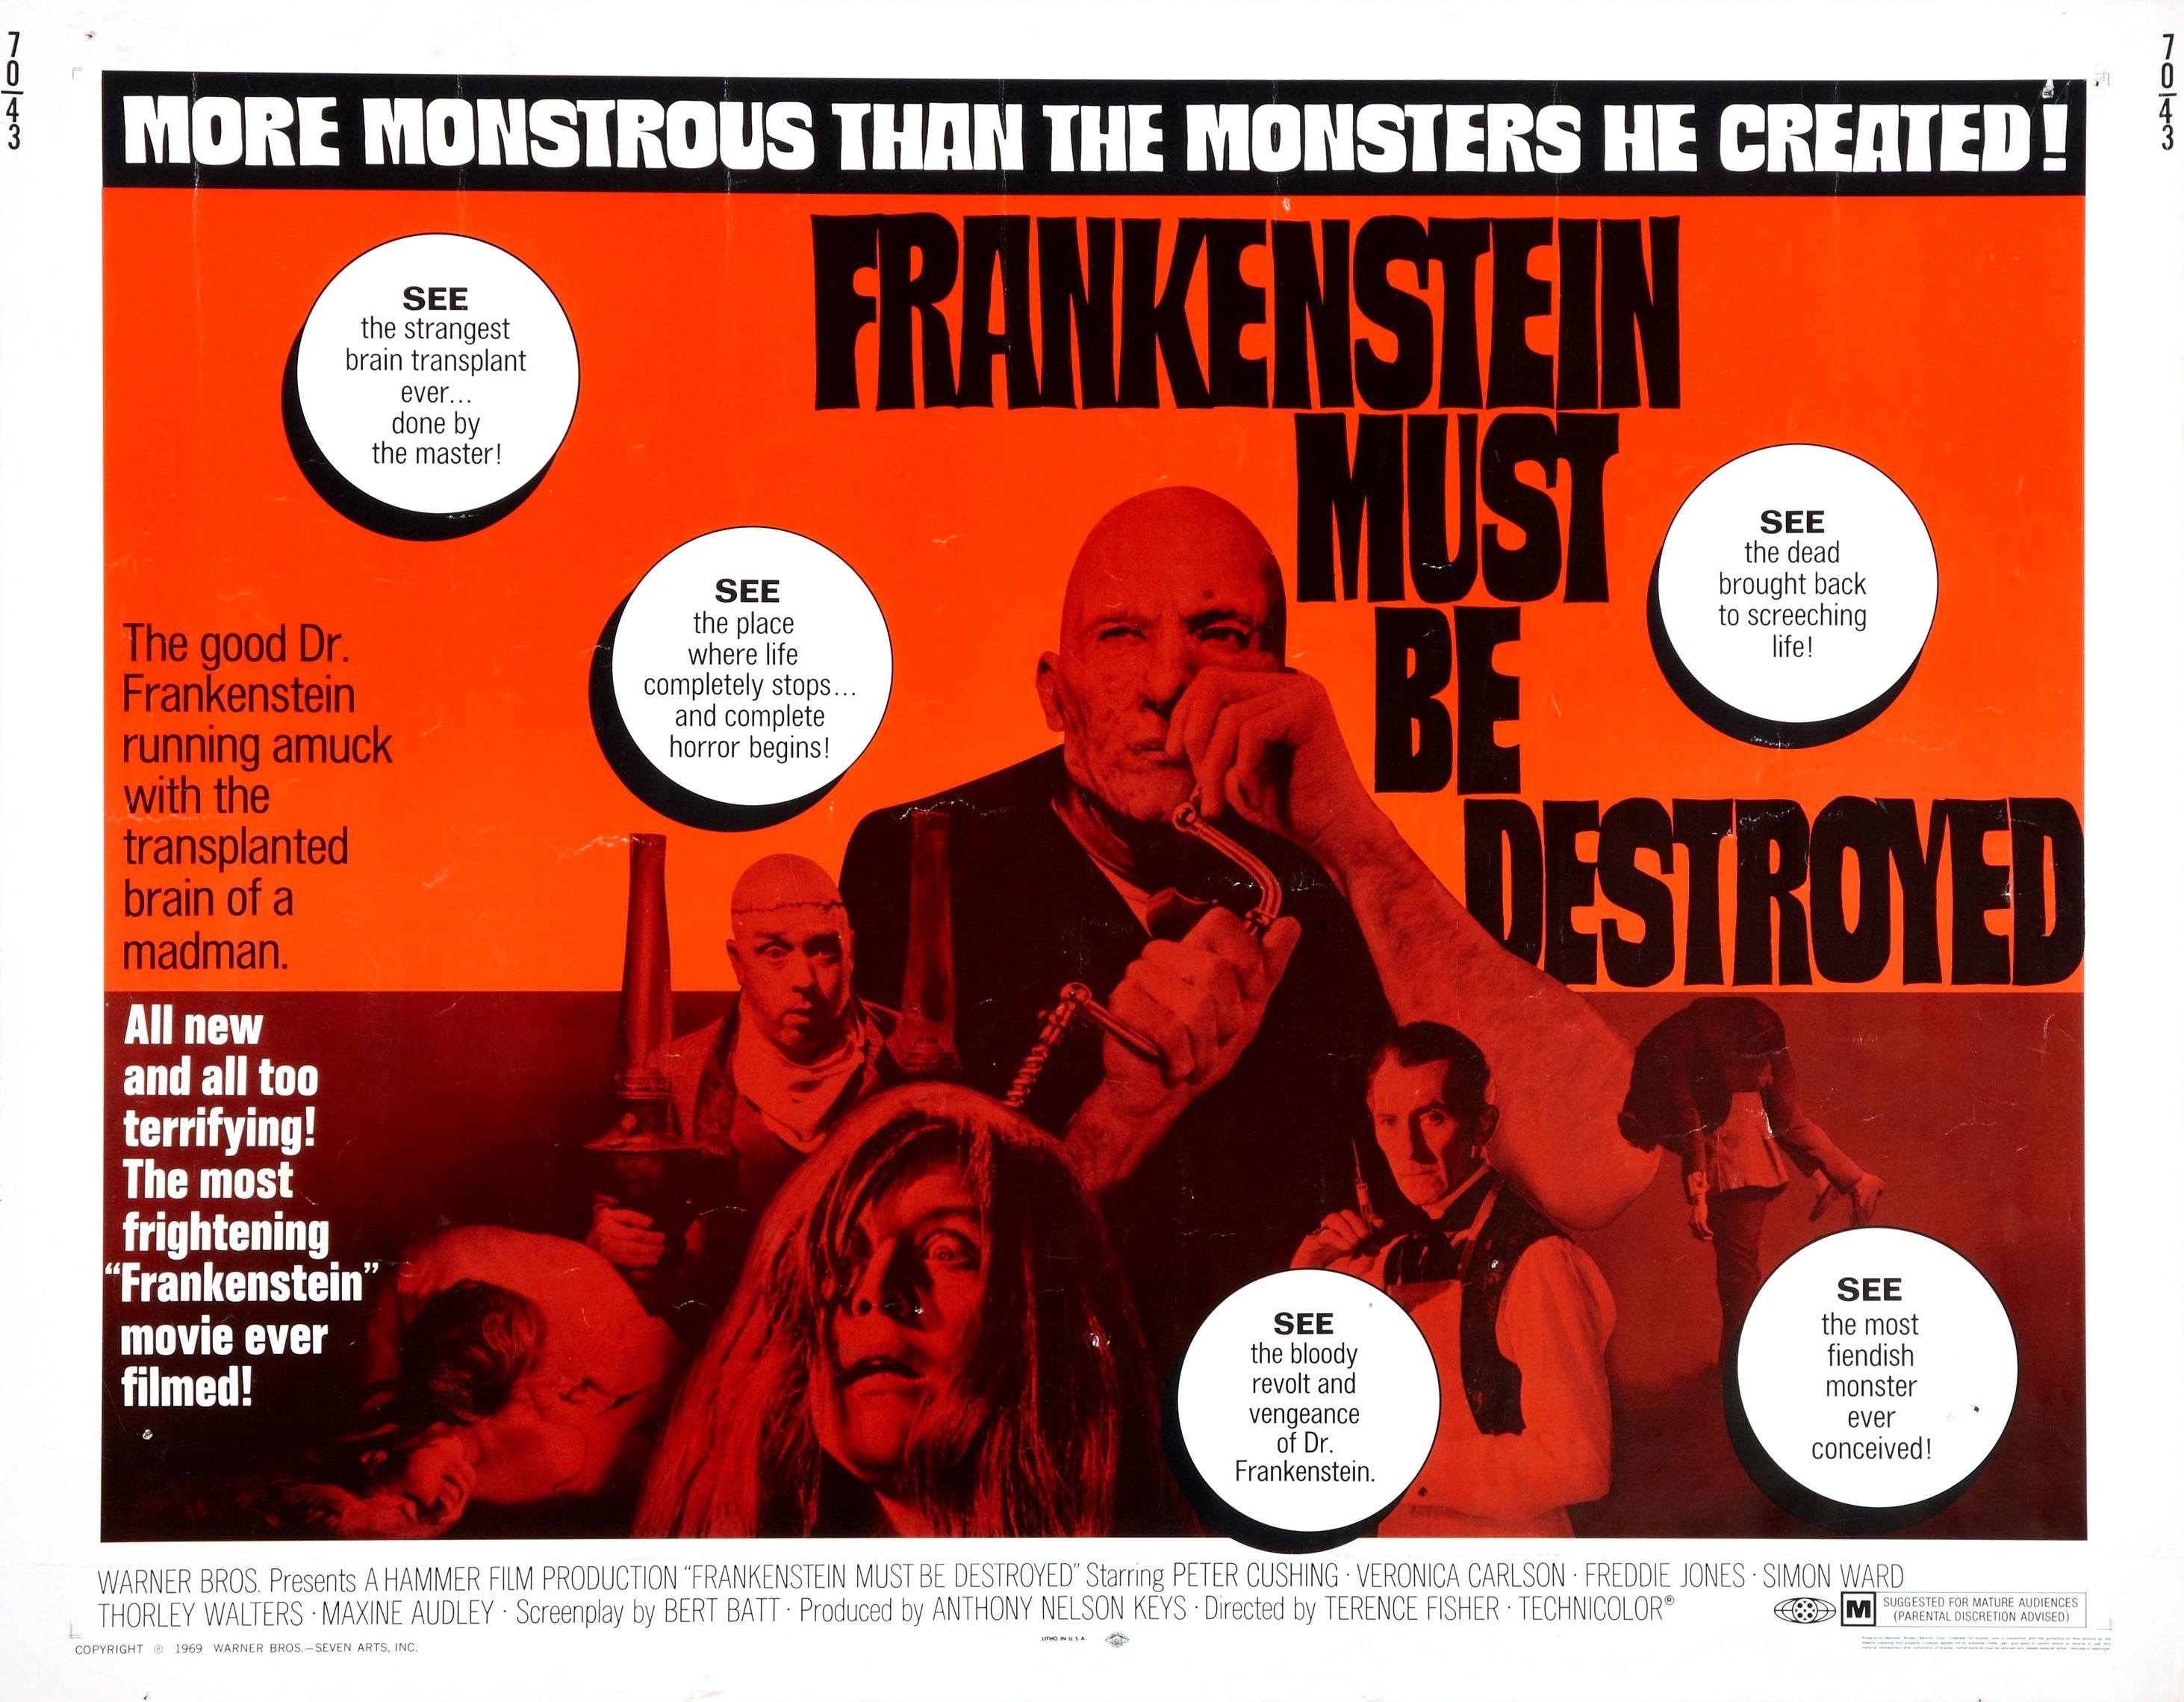 Movie Poster for &quotFrankenstein Must Be Destroyed""